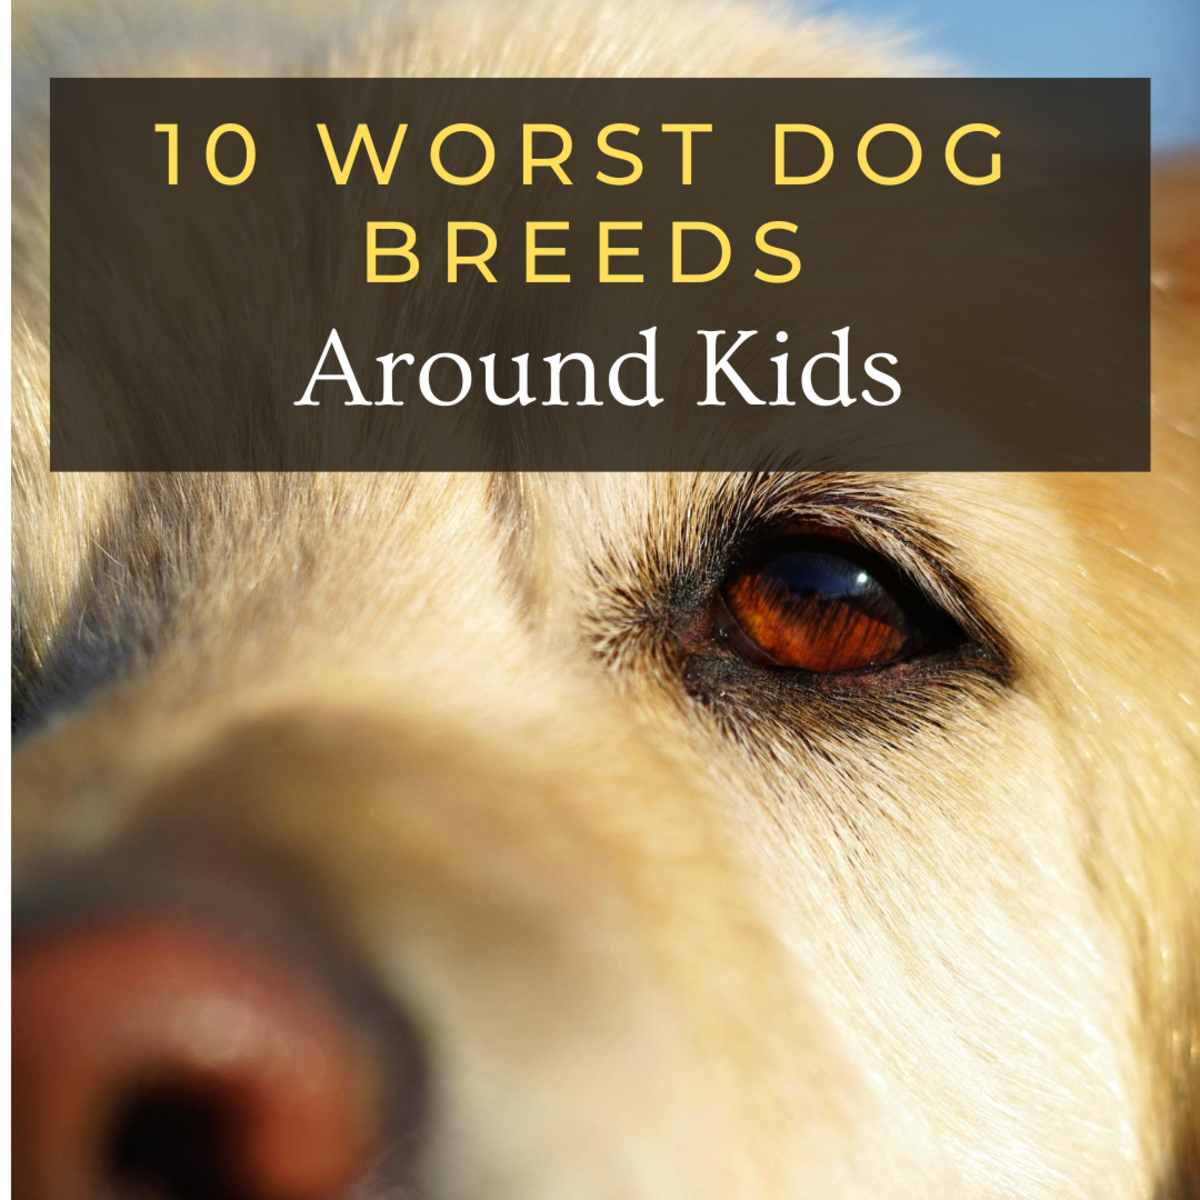 10 Worst Dog Breeds Around Kids